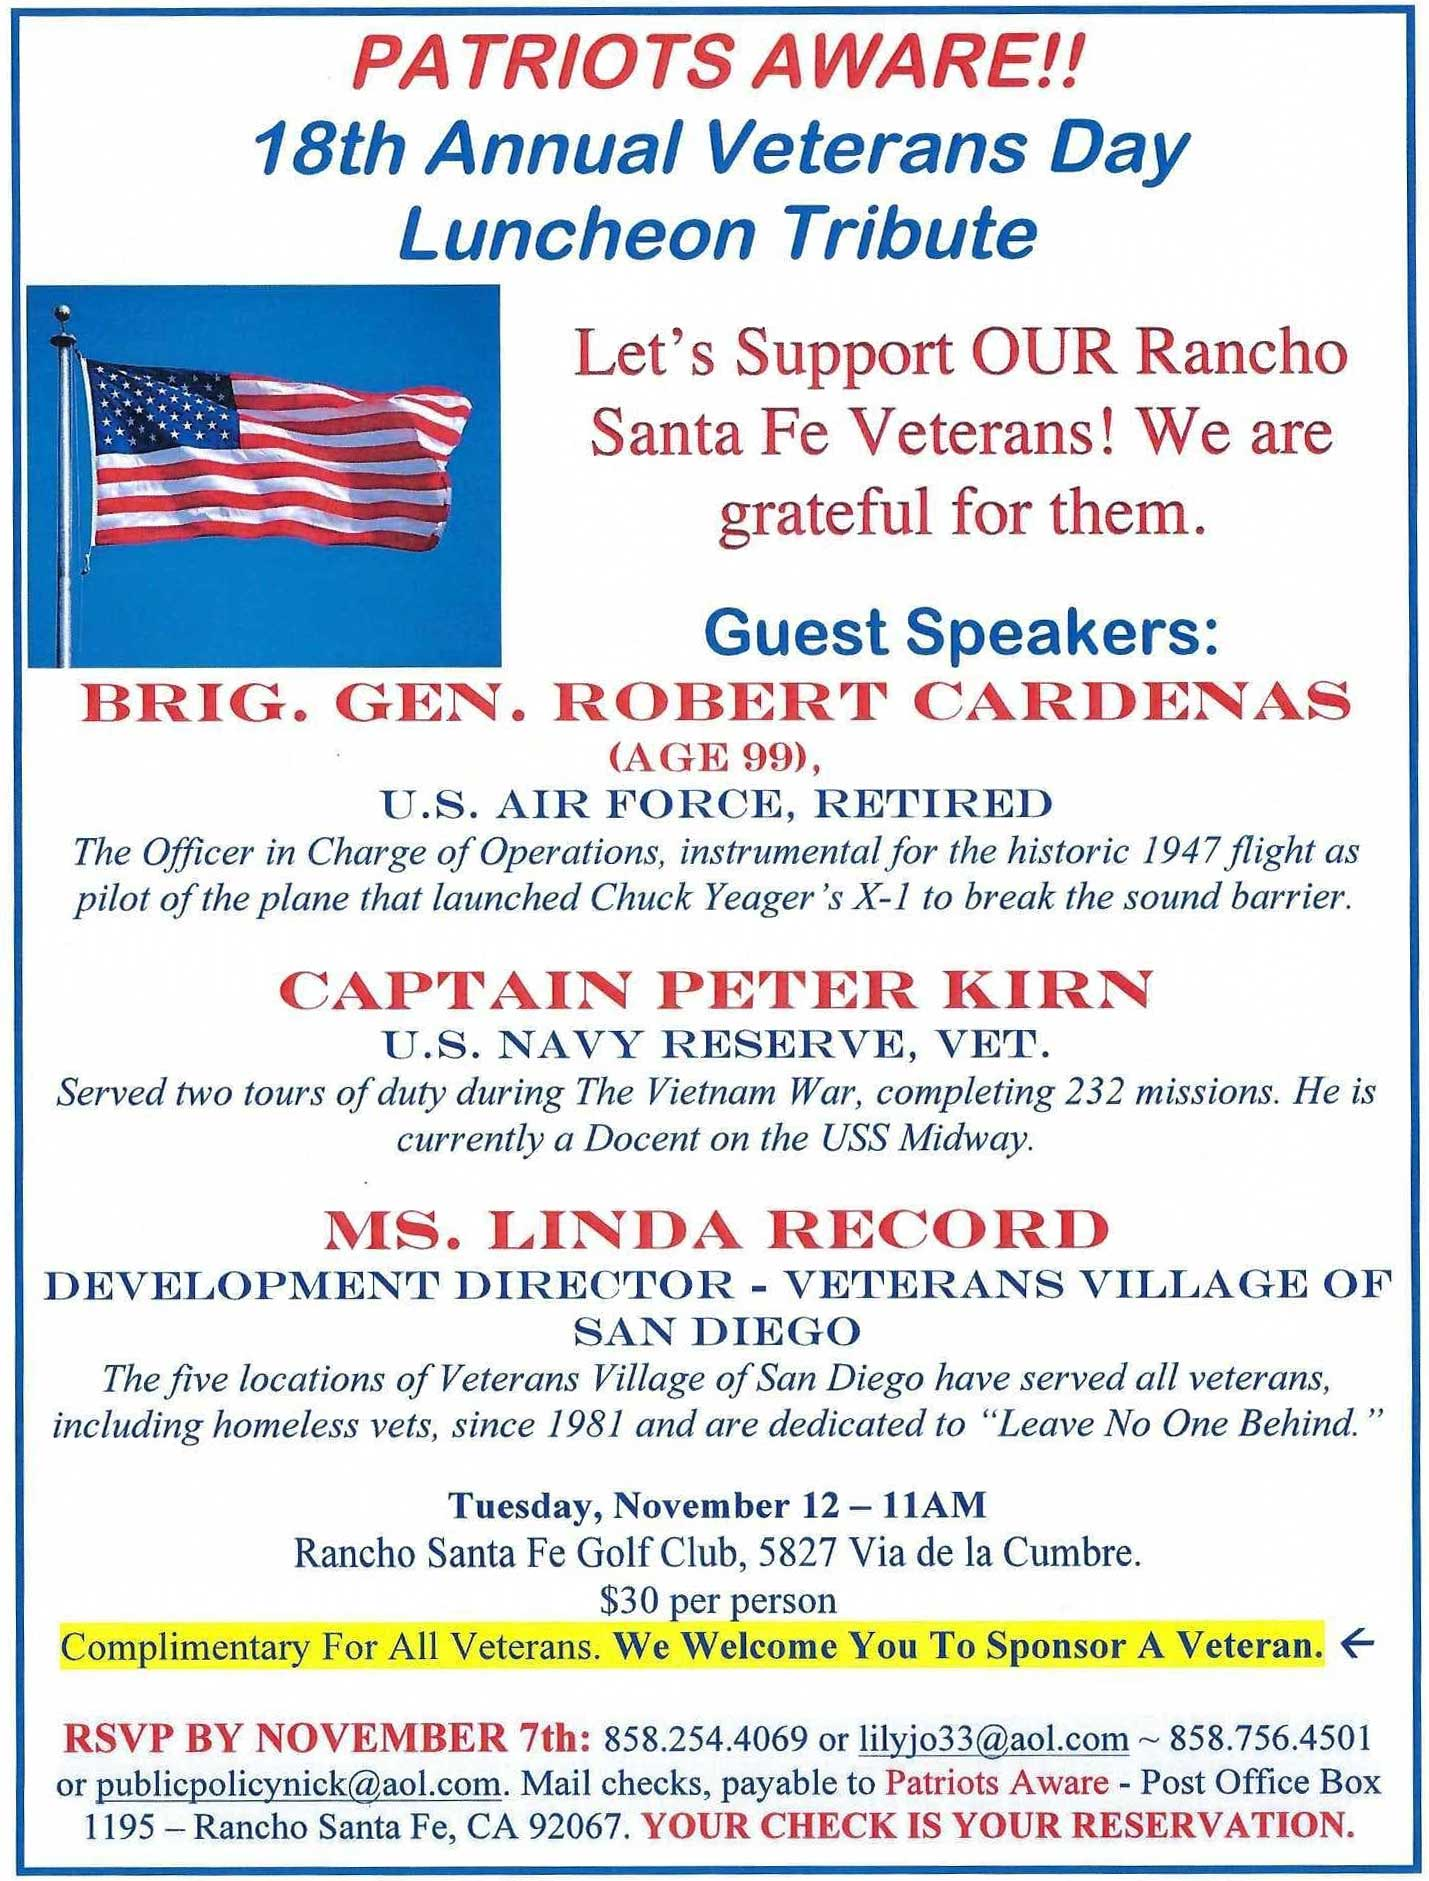 Veterans Day Luncheon Tribute @ RSF Golf Club